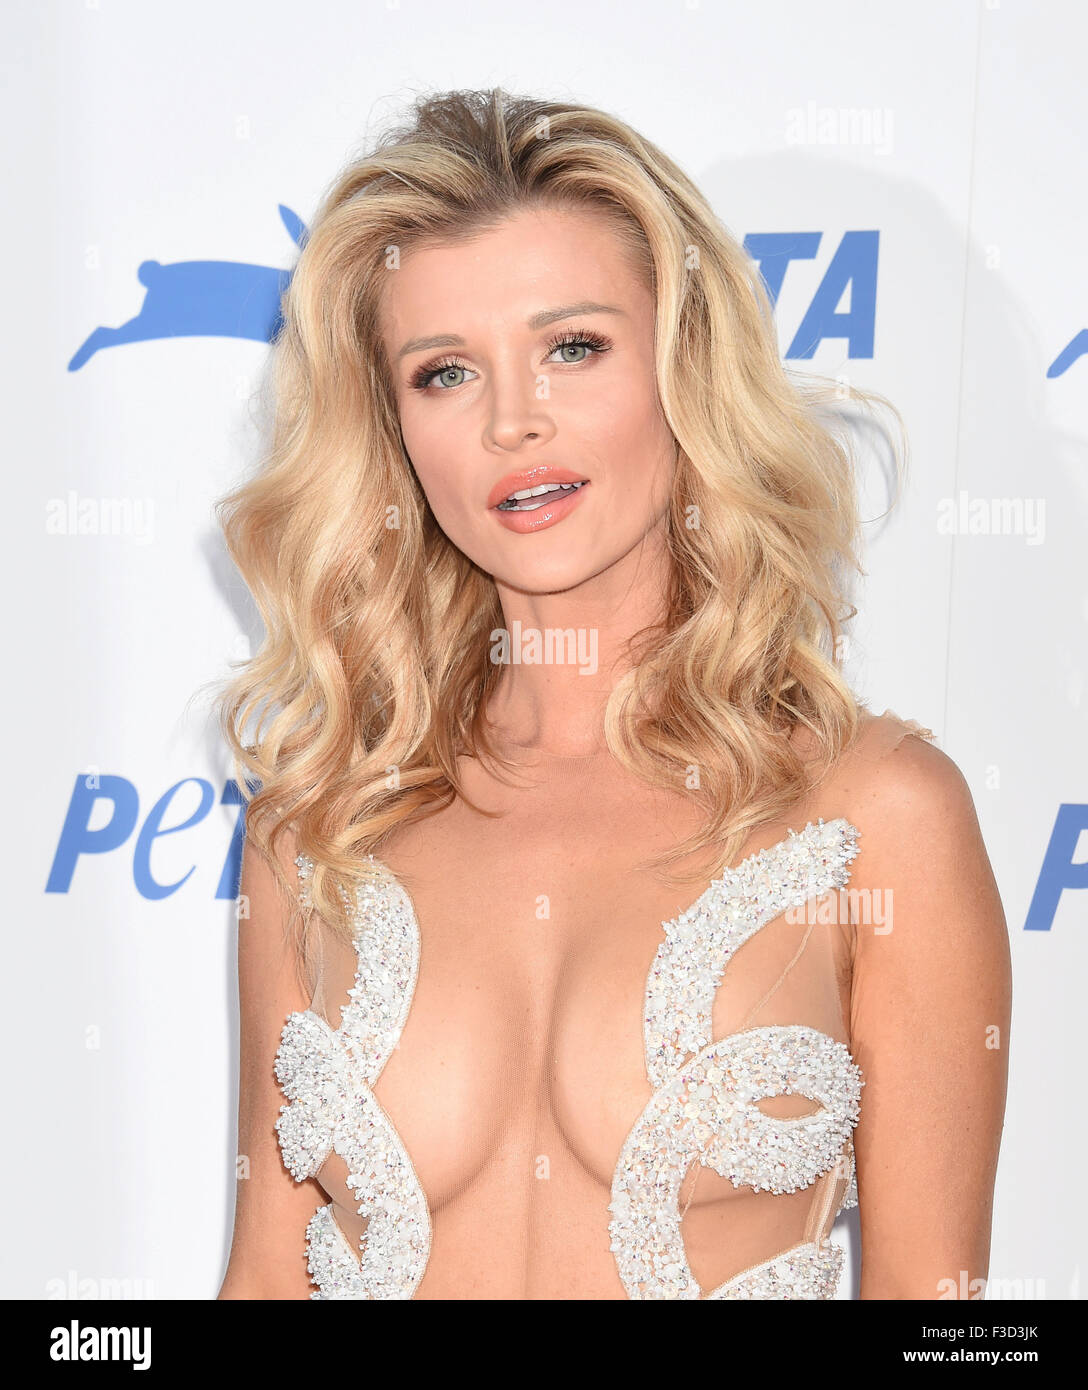 Images Joanna Krupa nudes (35 foto and video), Ass, Fappening, Boobs, cameltoe 2015